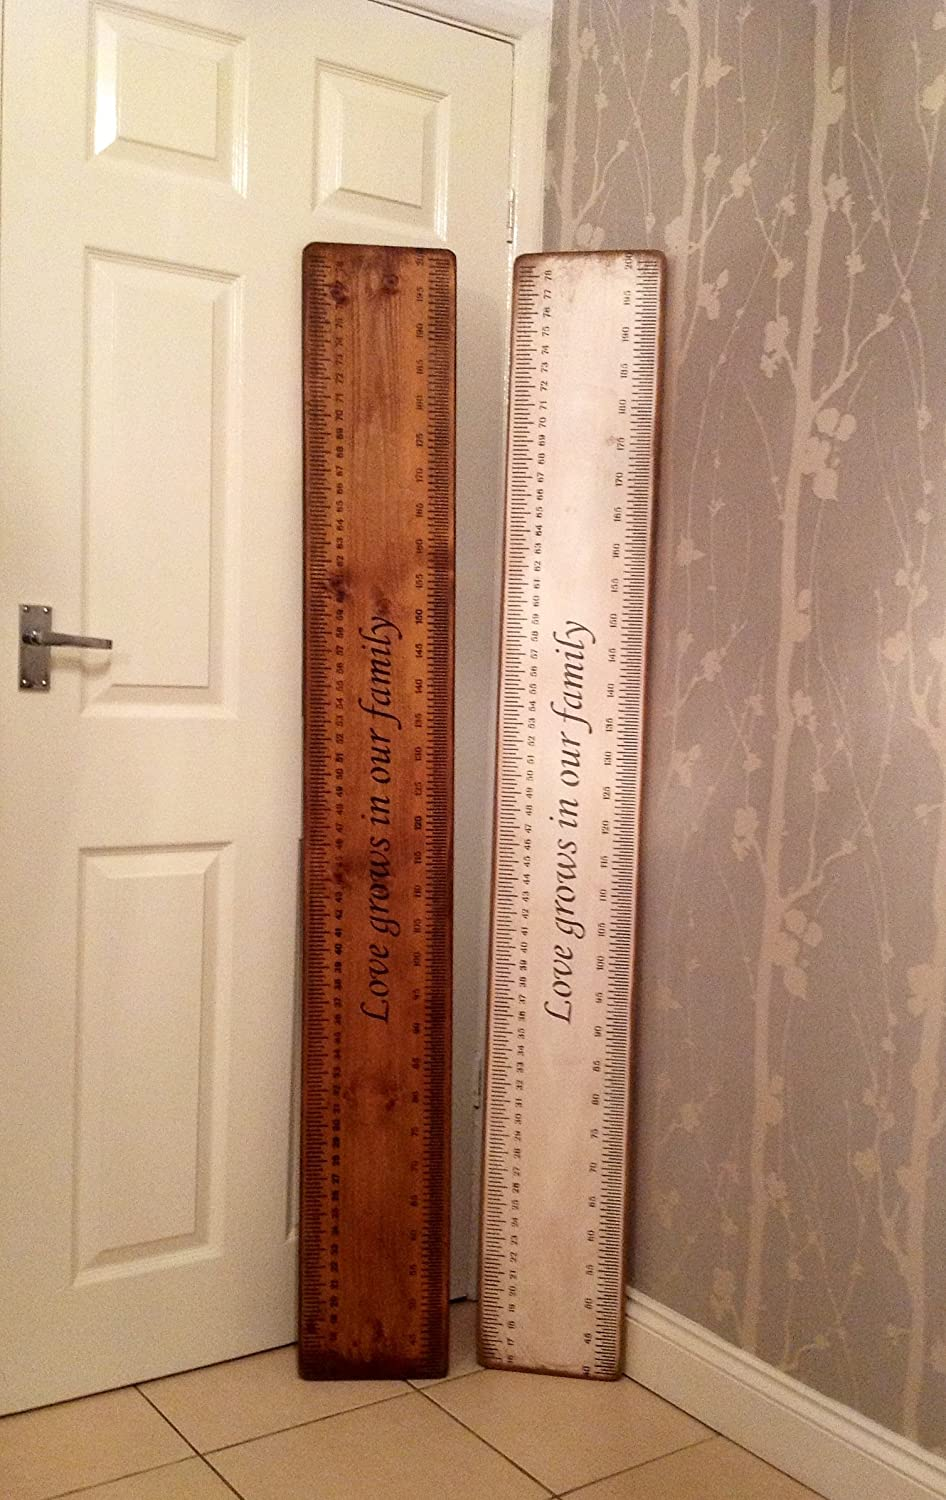 Handmade Shabby Chic Solid Wood Heigh Chart, Family Height Chart Saying Love Grows in Our Family by Vintage Product Designer Austin Sloan